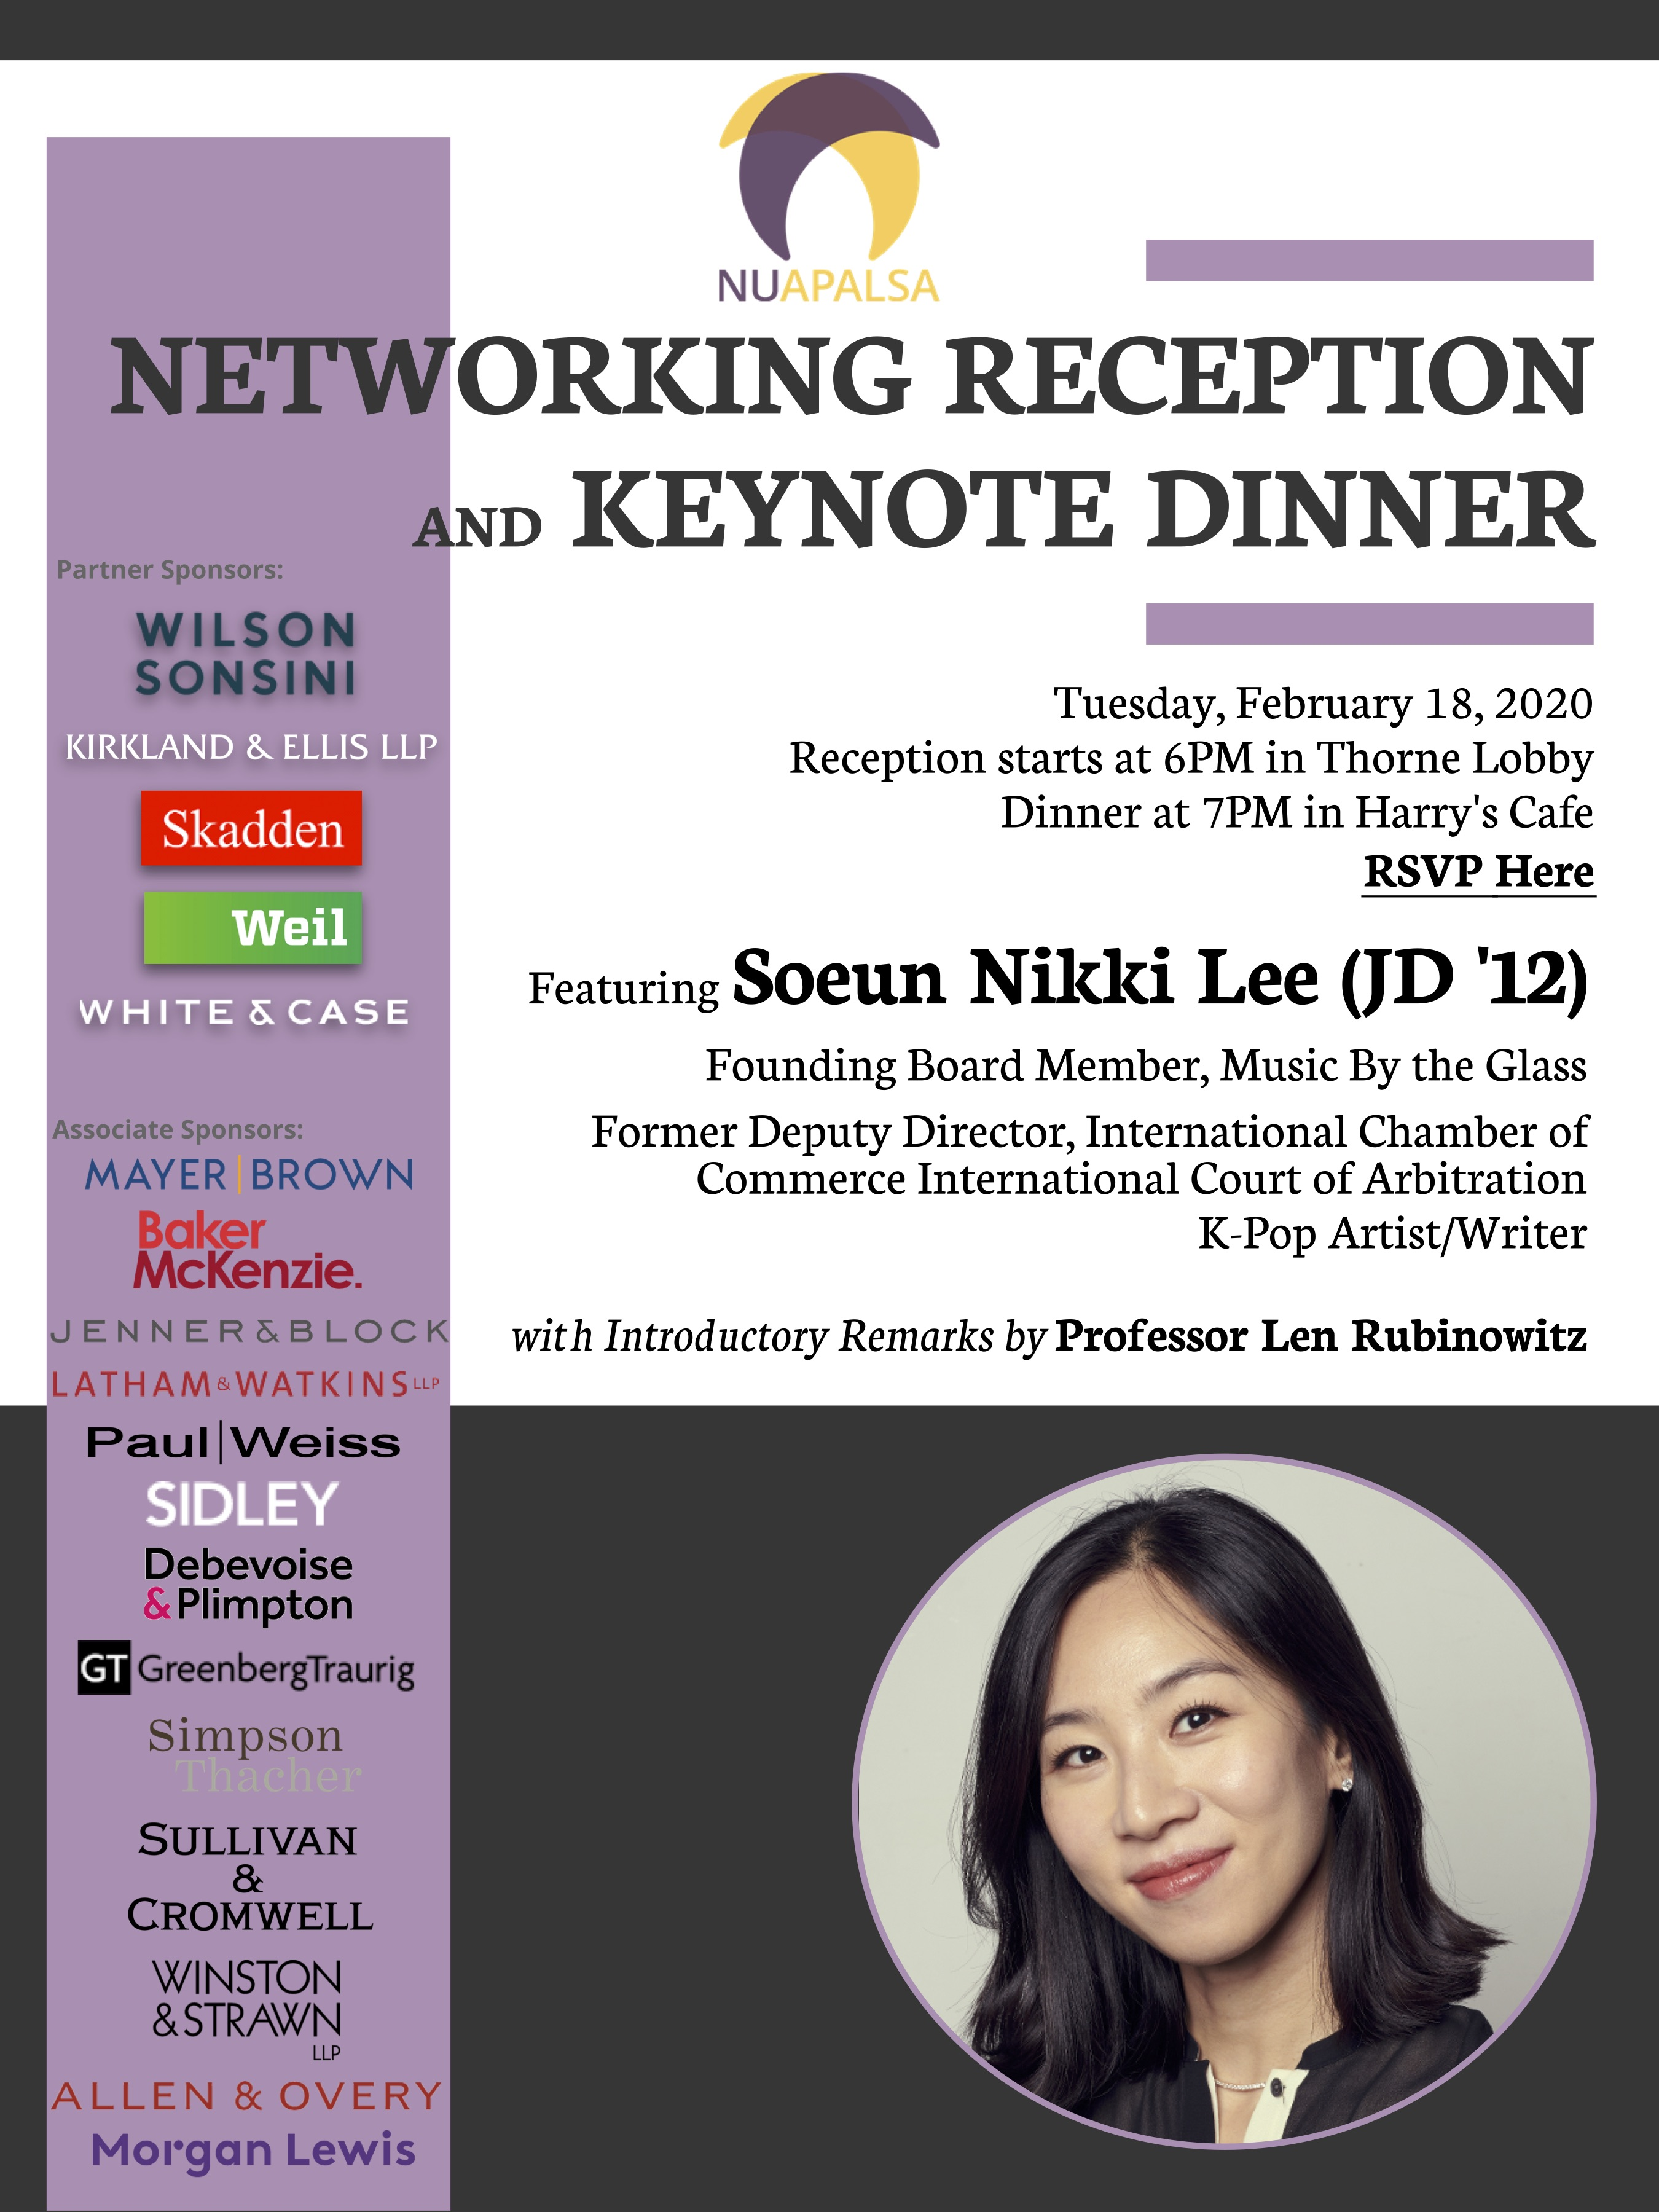 APALSA Keynote Dinner and Networking Reception (1)